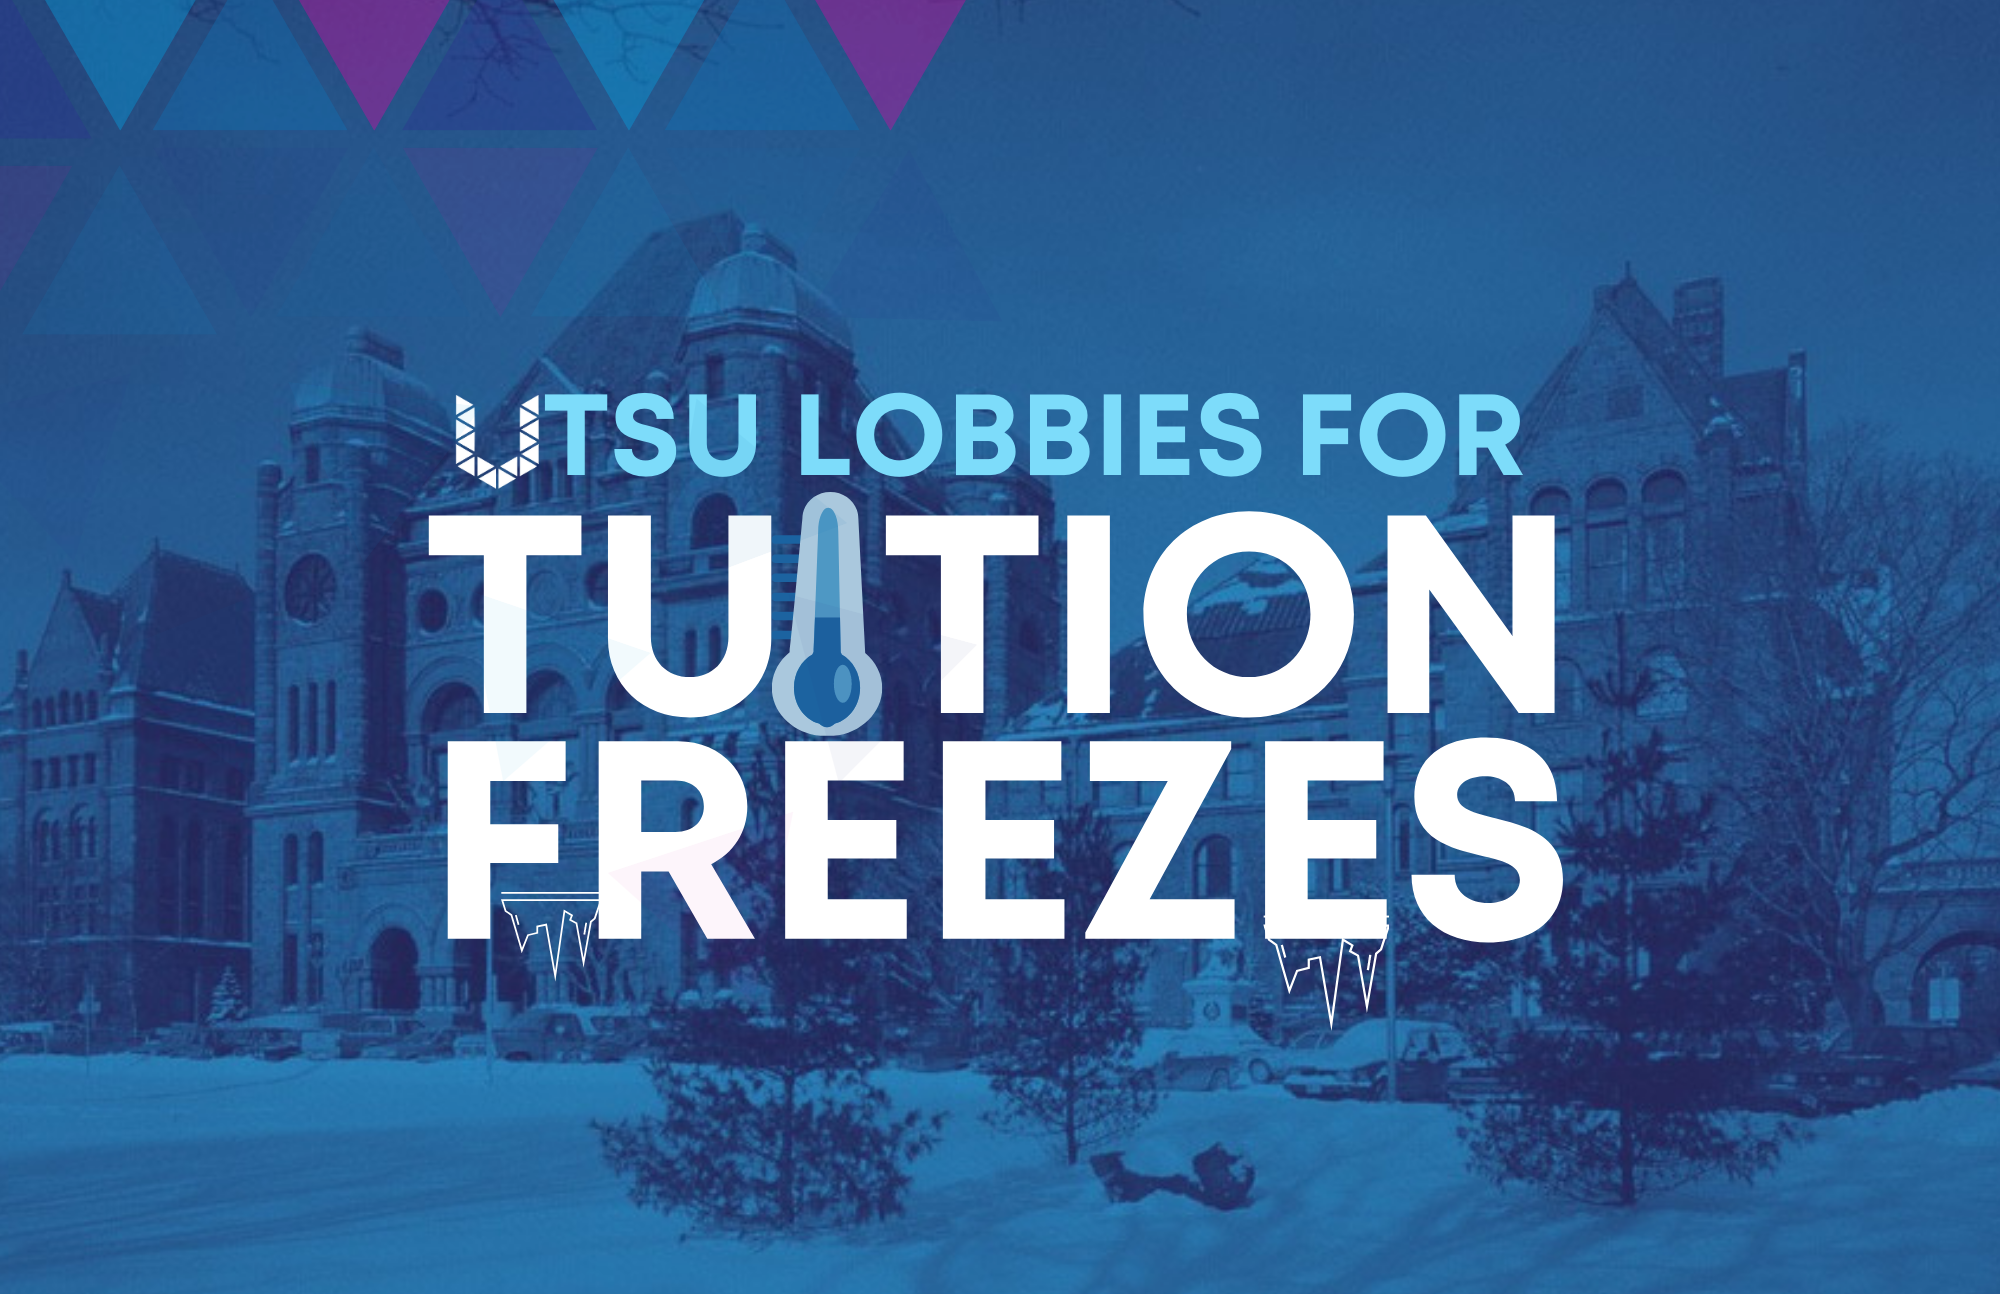 tuition freezes